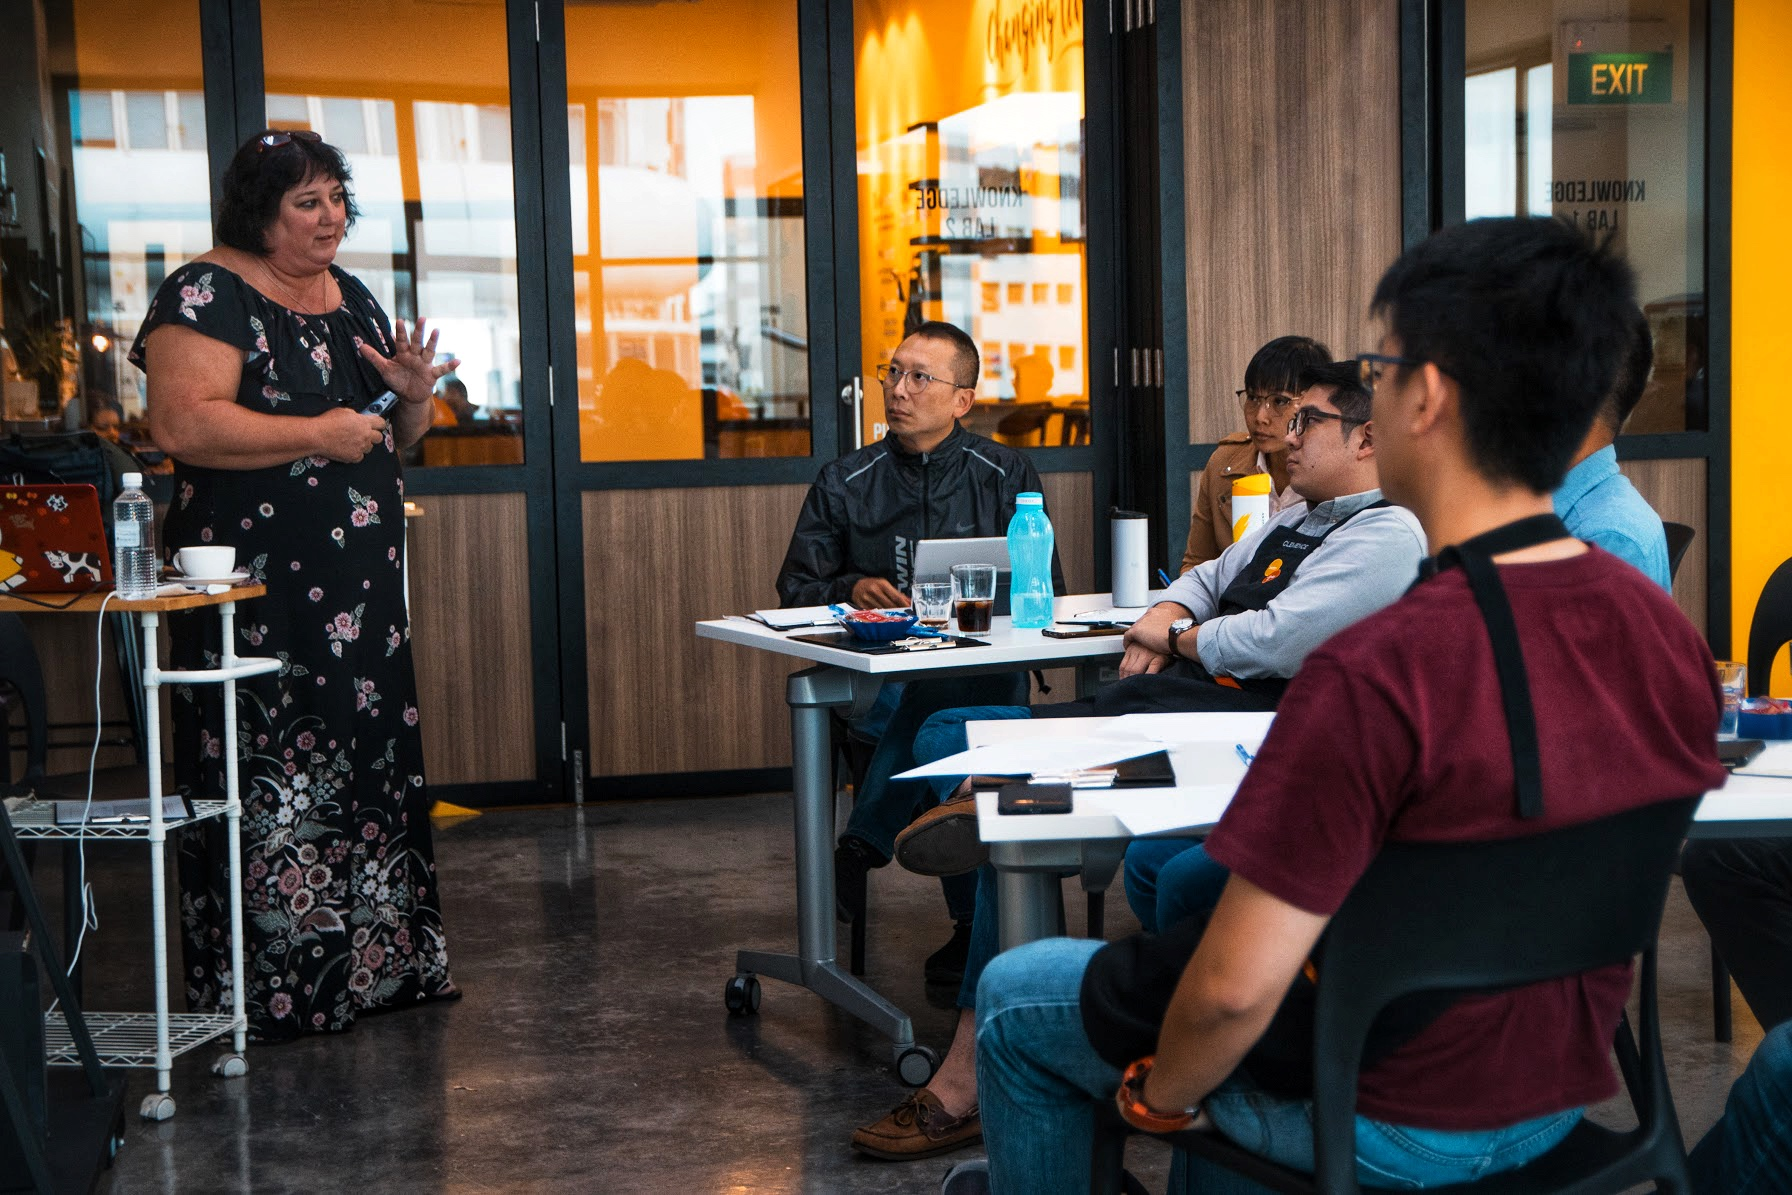 Annemarie has a lifetime of teaching experience - here she shares her knowledge of coffee with students at the Bettr Barista Academy.